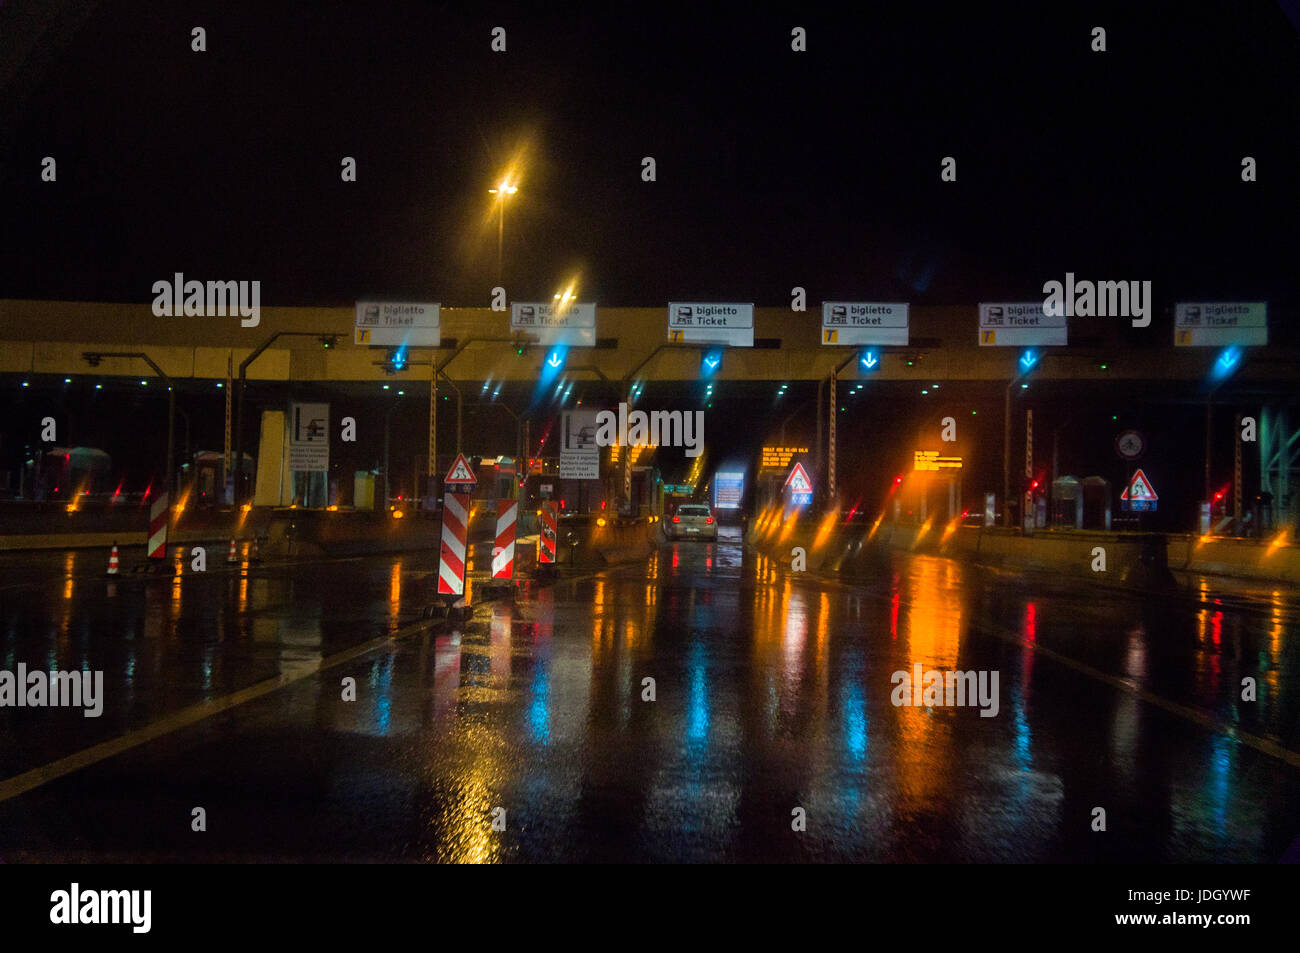 A22 motorway, highway, sign, Pay Toll, Autobahngebuhr, Pagamento